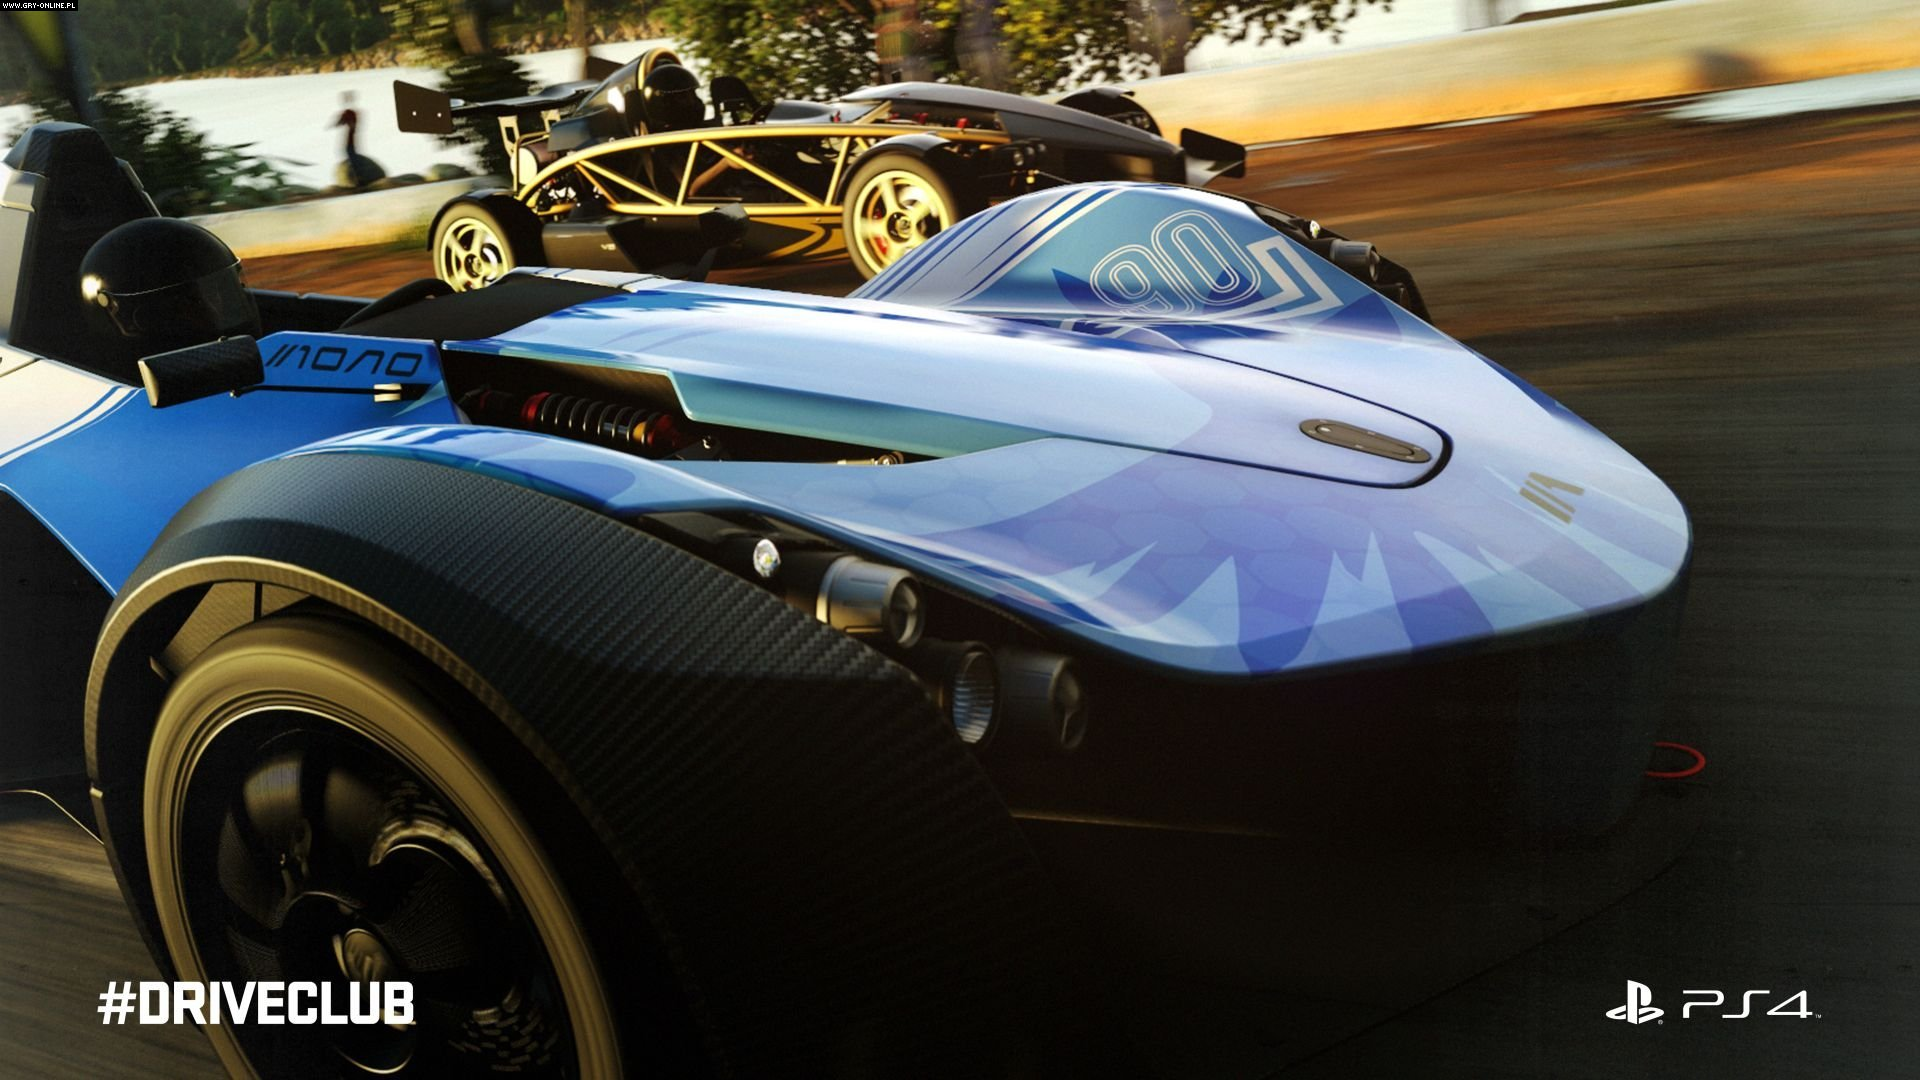 DriveClub PS4 Gry Screen 31/119, Evolution Studios, Sony Interactive Entertainment